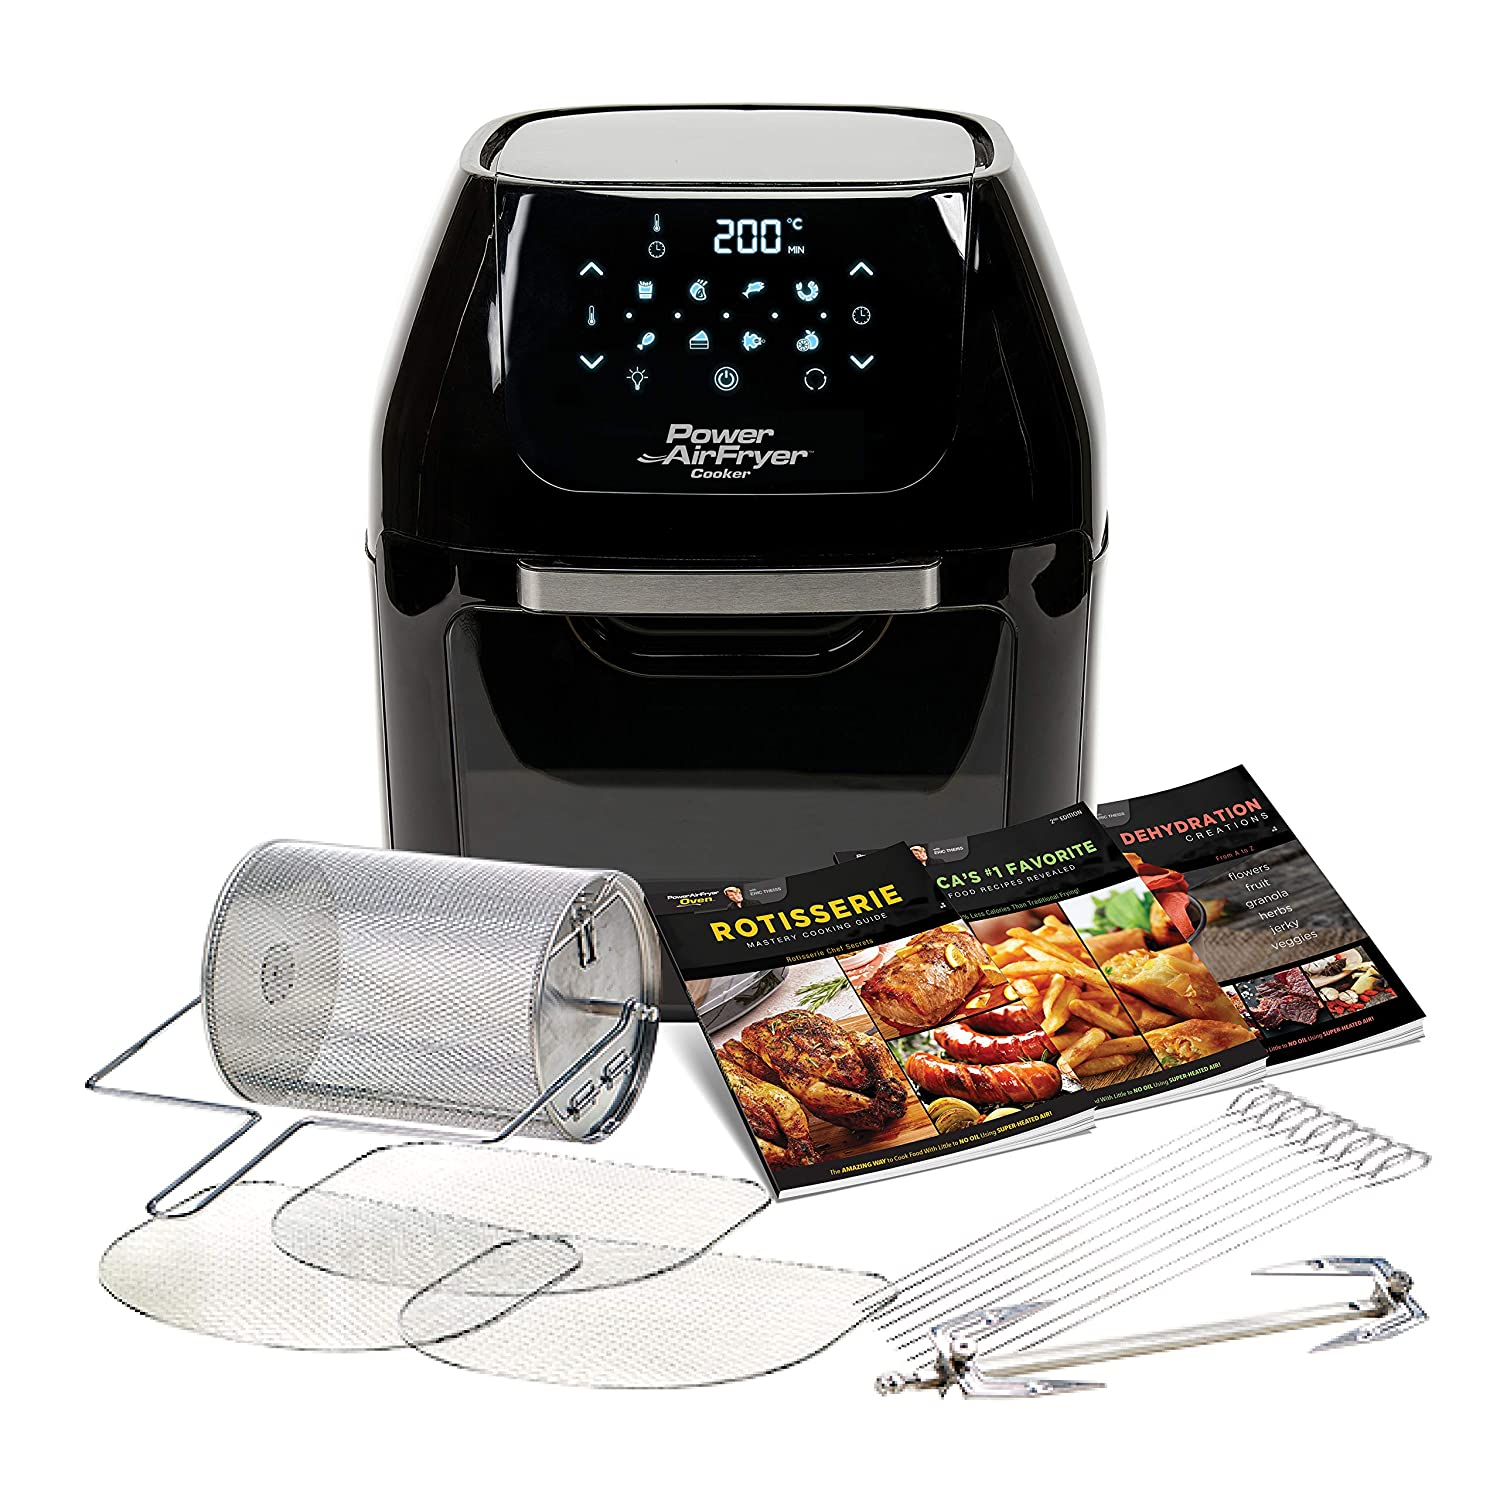 Power Air Fryer Cooker - Chip Fryer, Portable Oven, Oil Free Hot Air Health Fryer, Rotating Rotisserie and Dehydrator (1800W) Black High Street TV PAFBKO